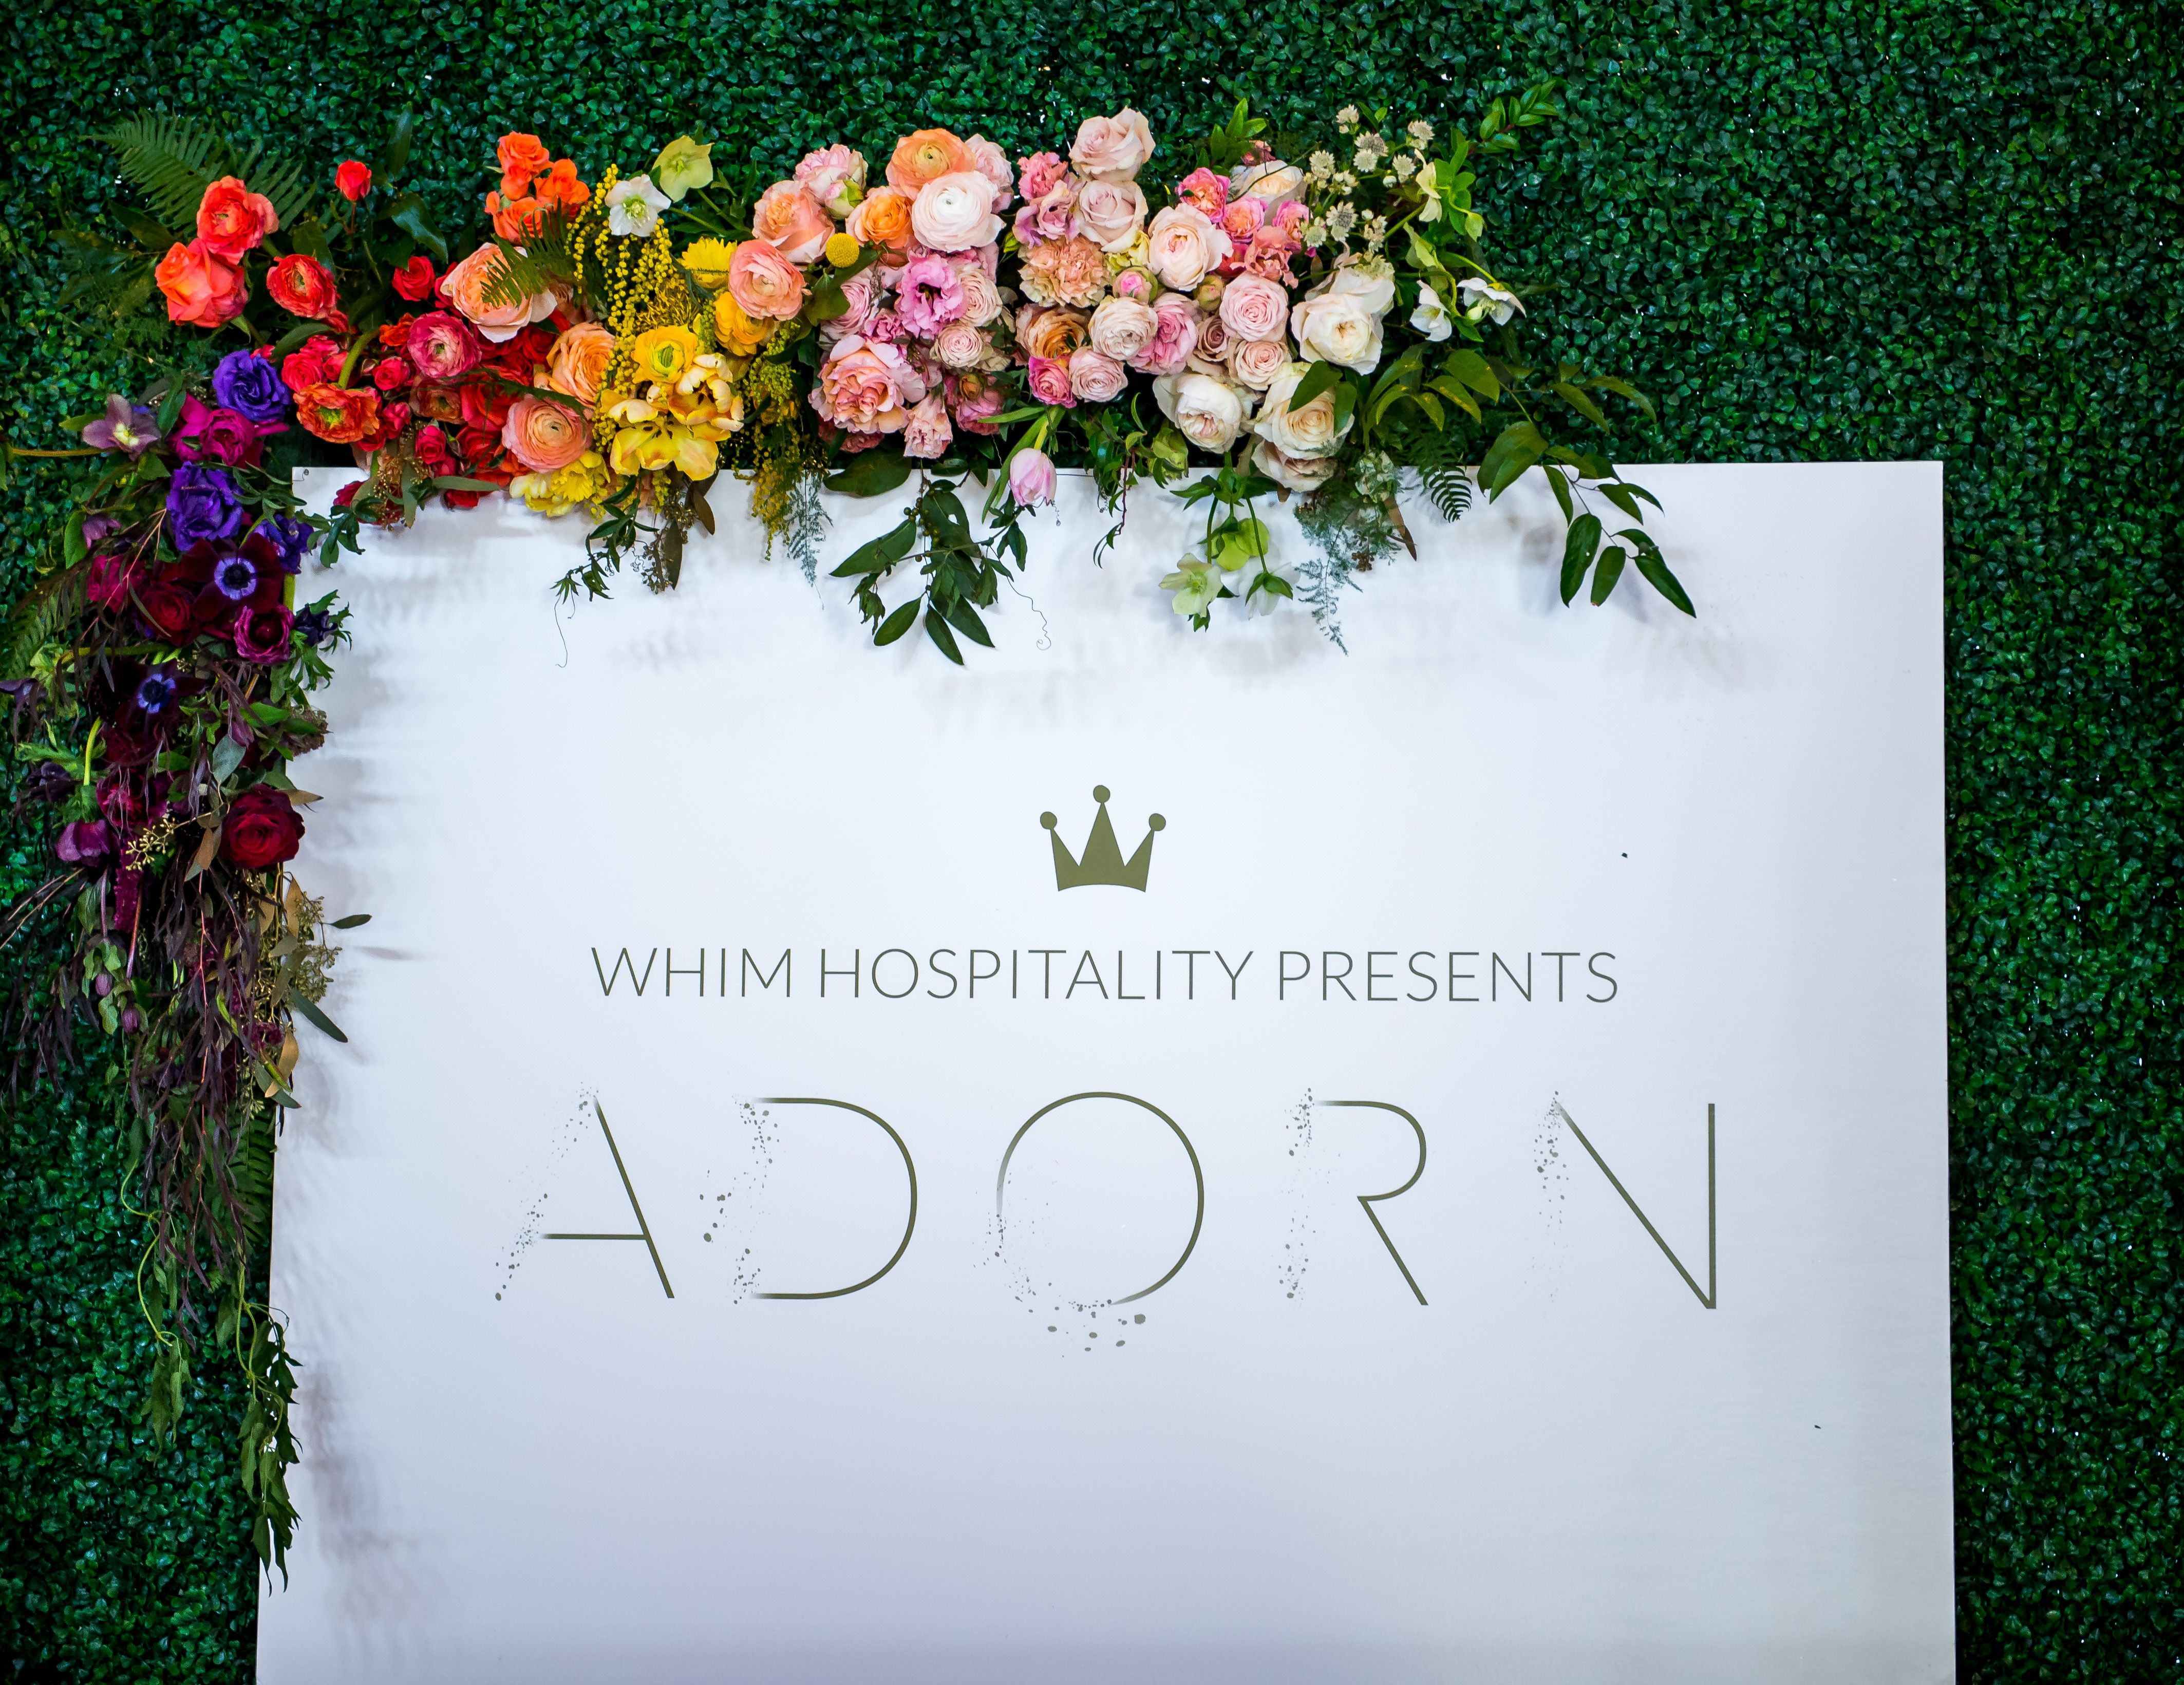 Whim Florals | Colorful Ombre Floral Design | Parrot tulips, Acacia, Anemones, Garden Roses, Ranunculus, Sweet Peas, Umbrella Fern, Lisianthus, Chocolate Queen Anne's Lace, Daffodils